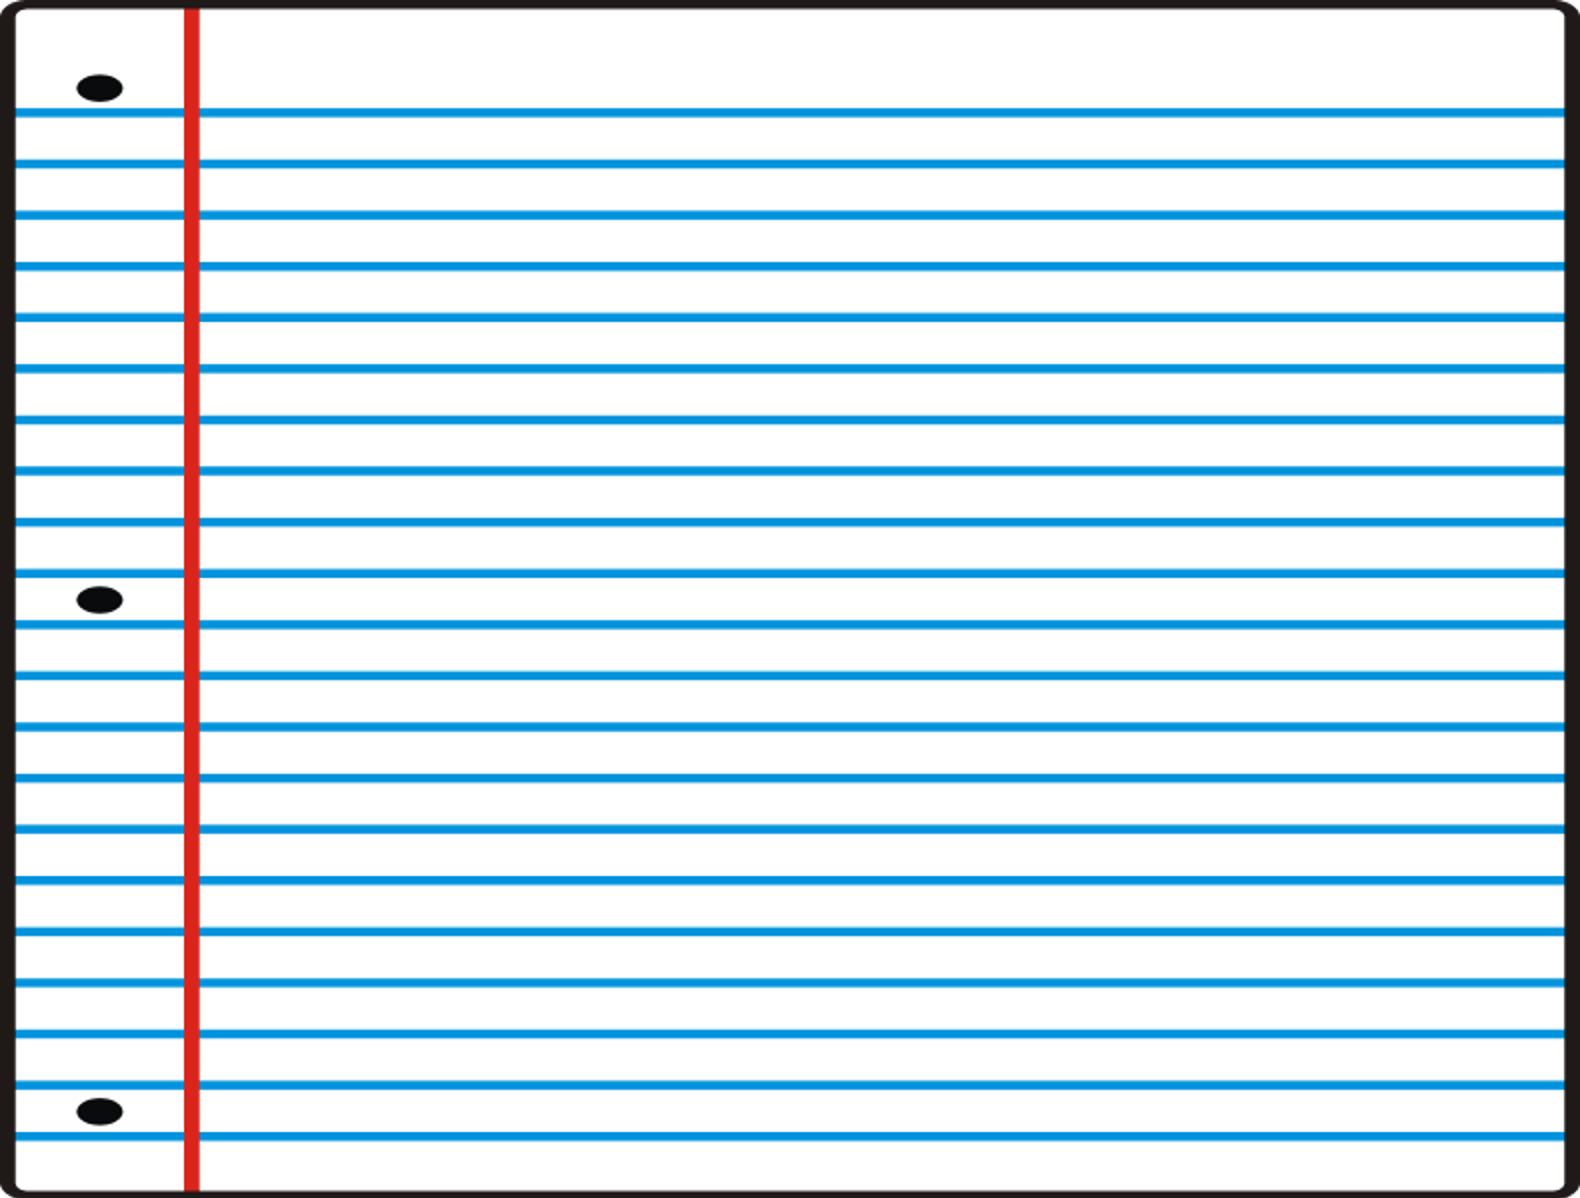 Free Lined Paper Cliparts, Download Free Clip Art, Free Clip.